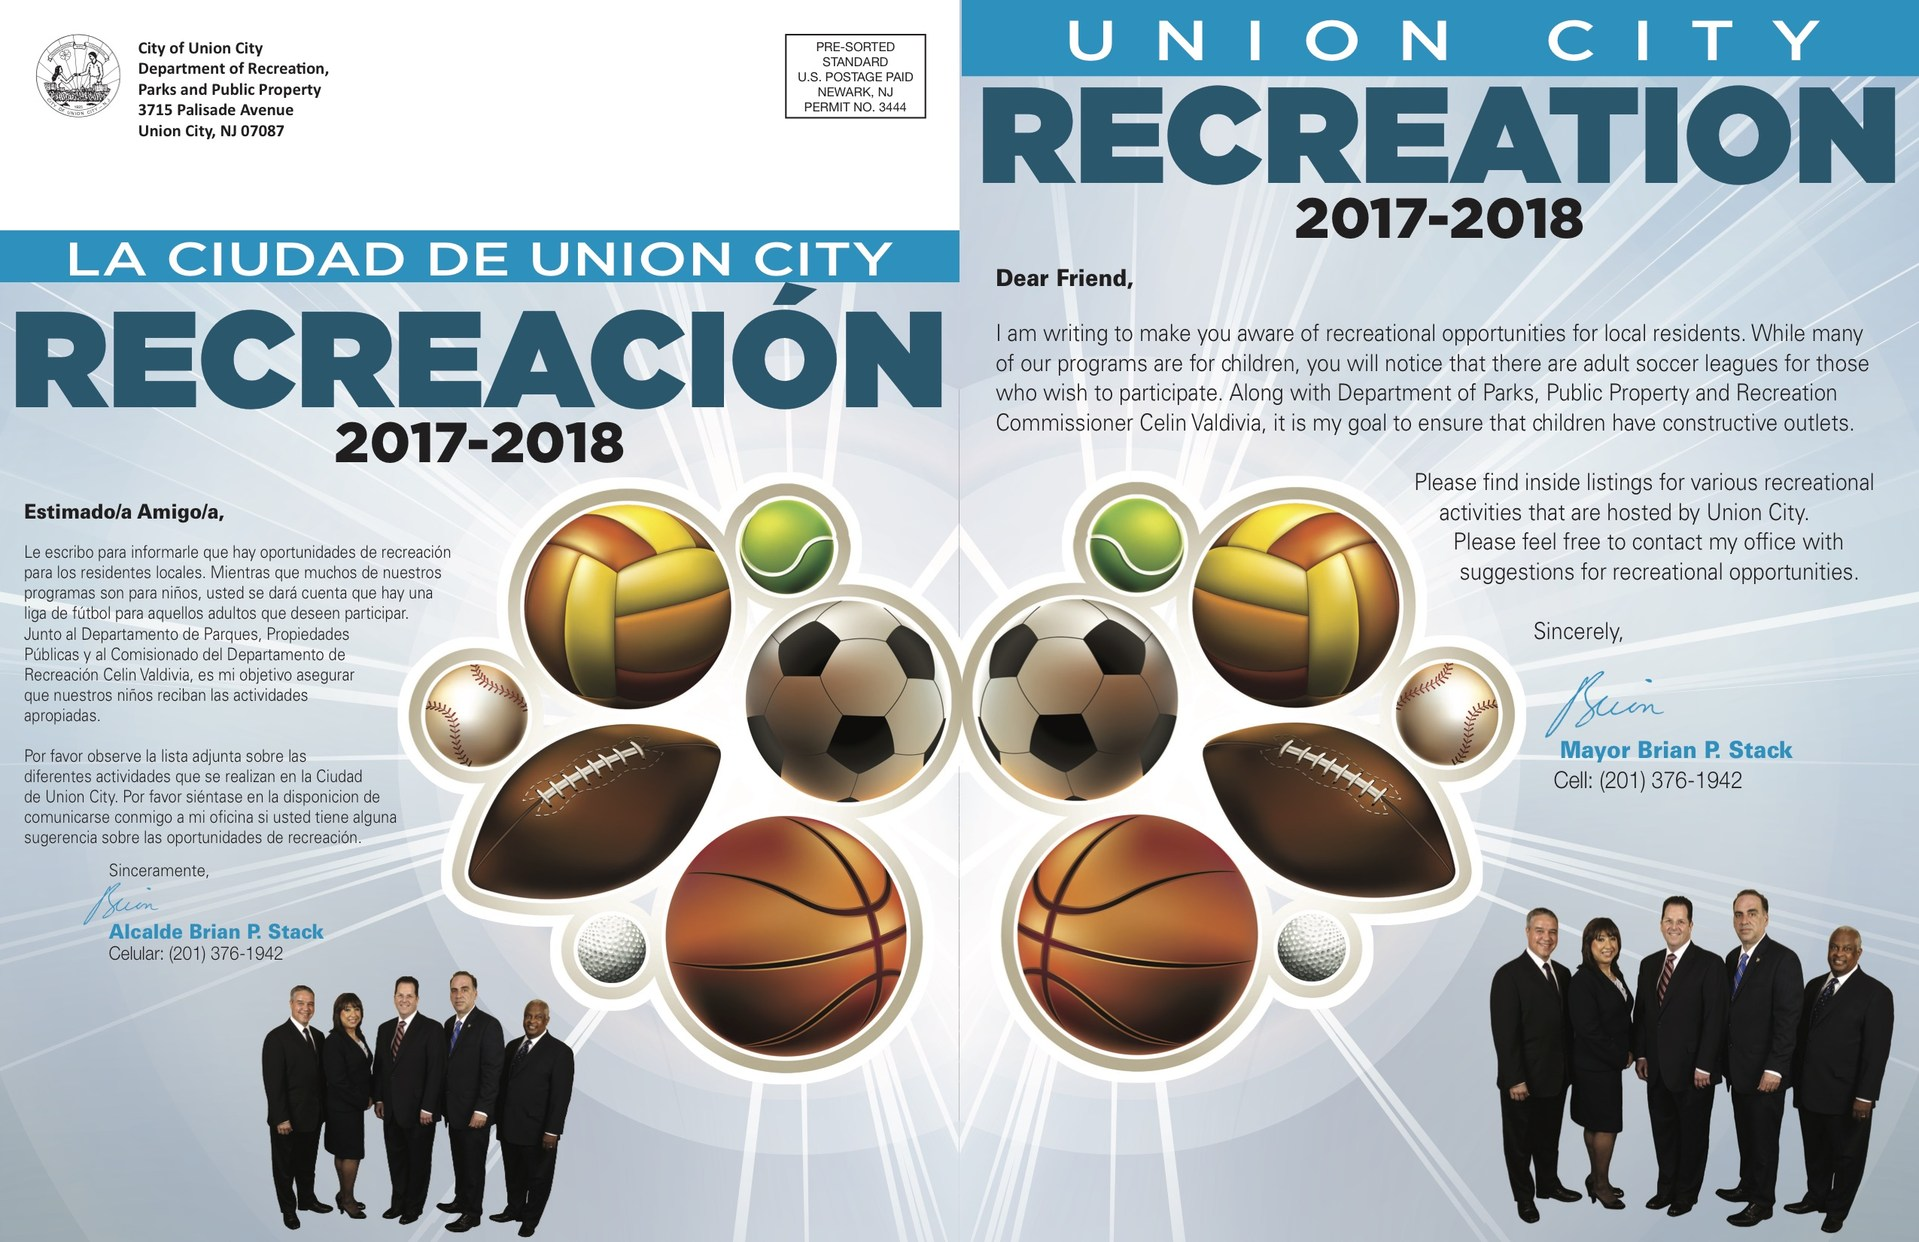 UC Recreation 2017-2018 page 1 & Link